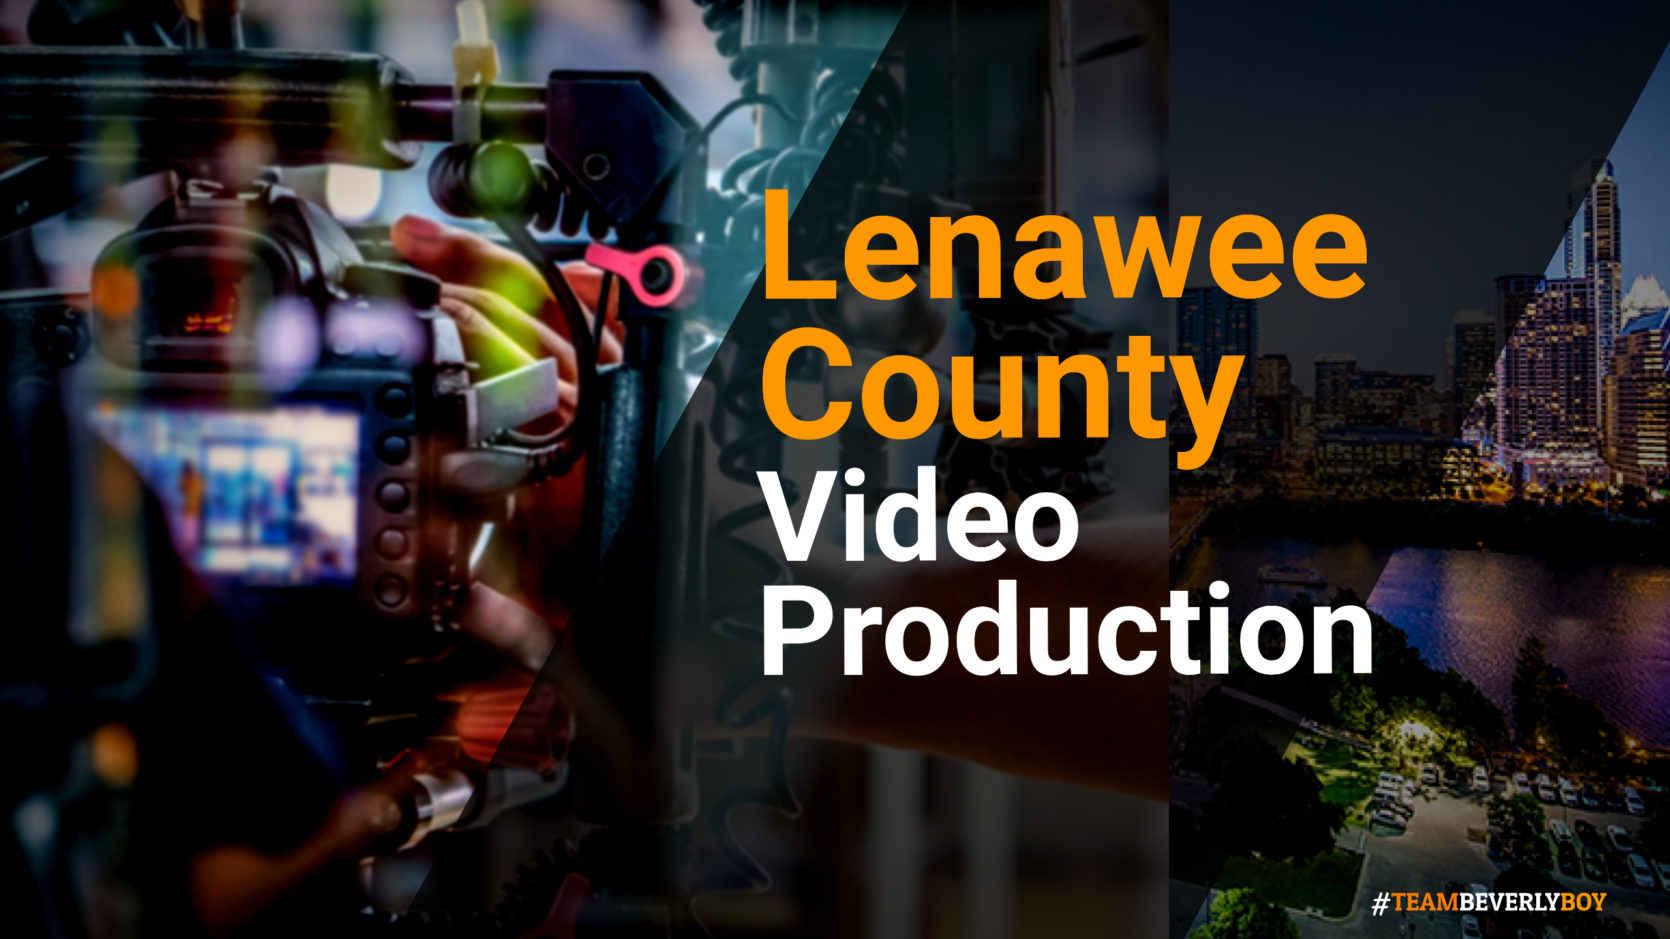 Lenawee County video production